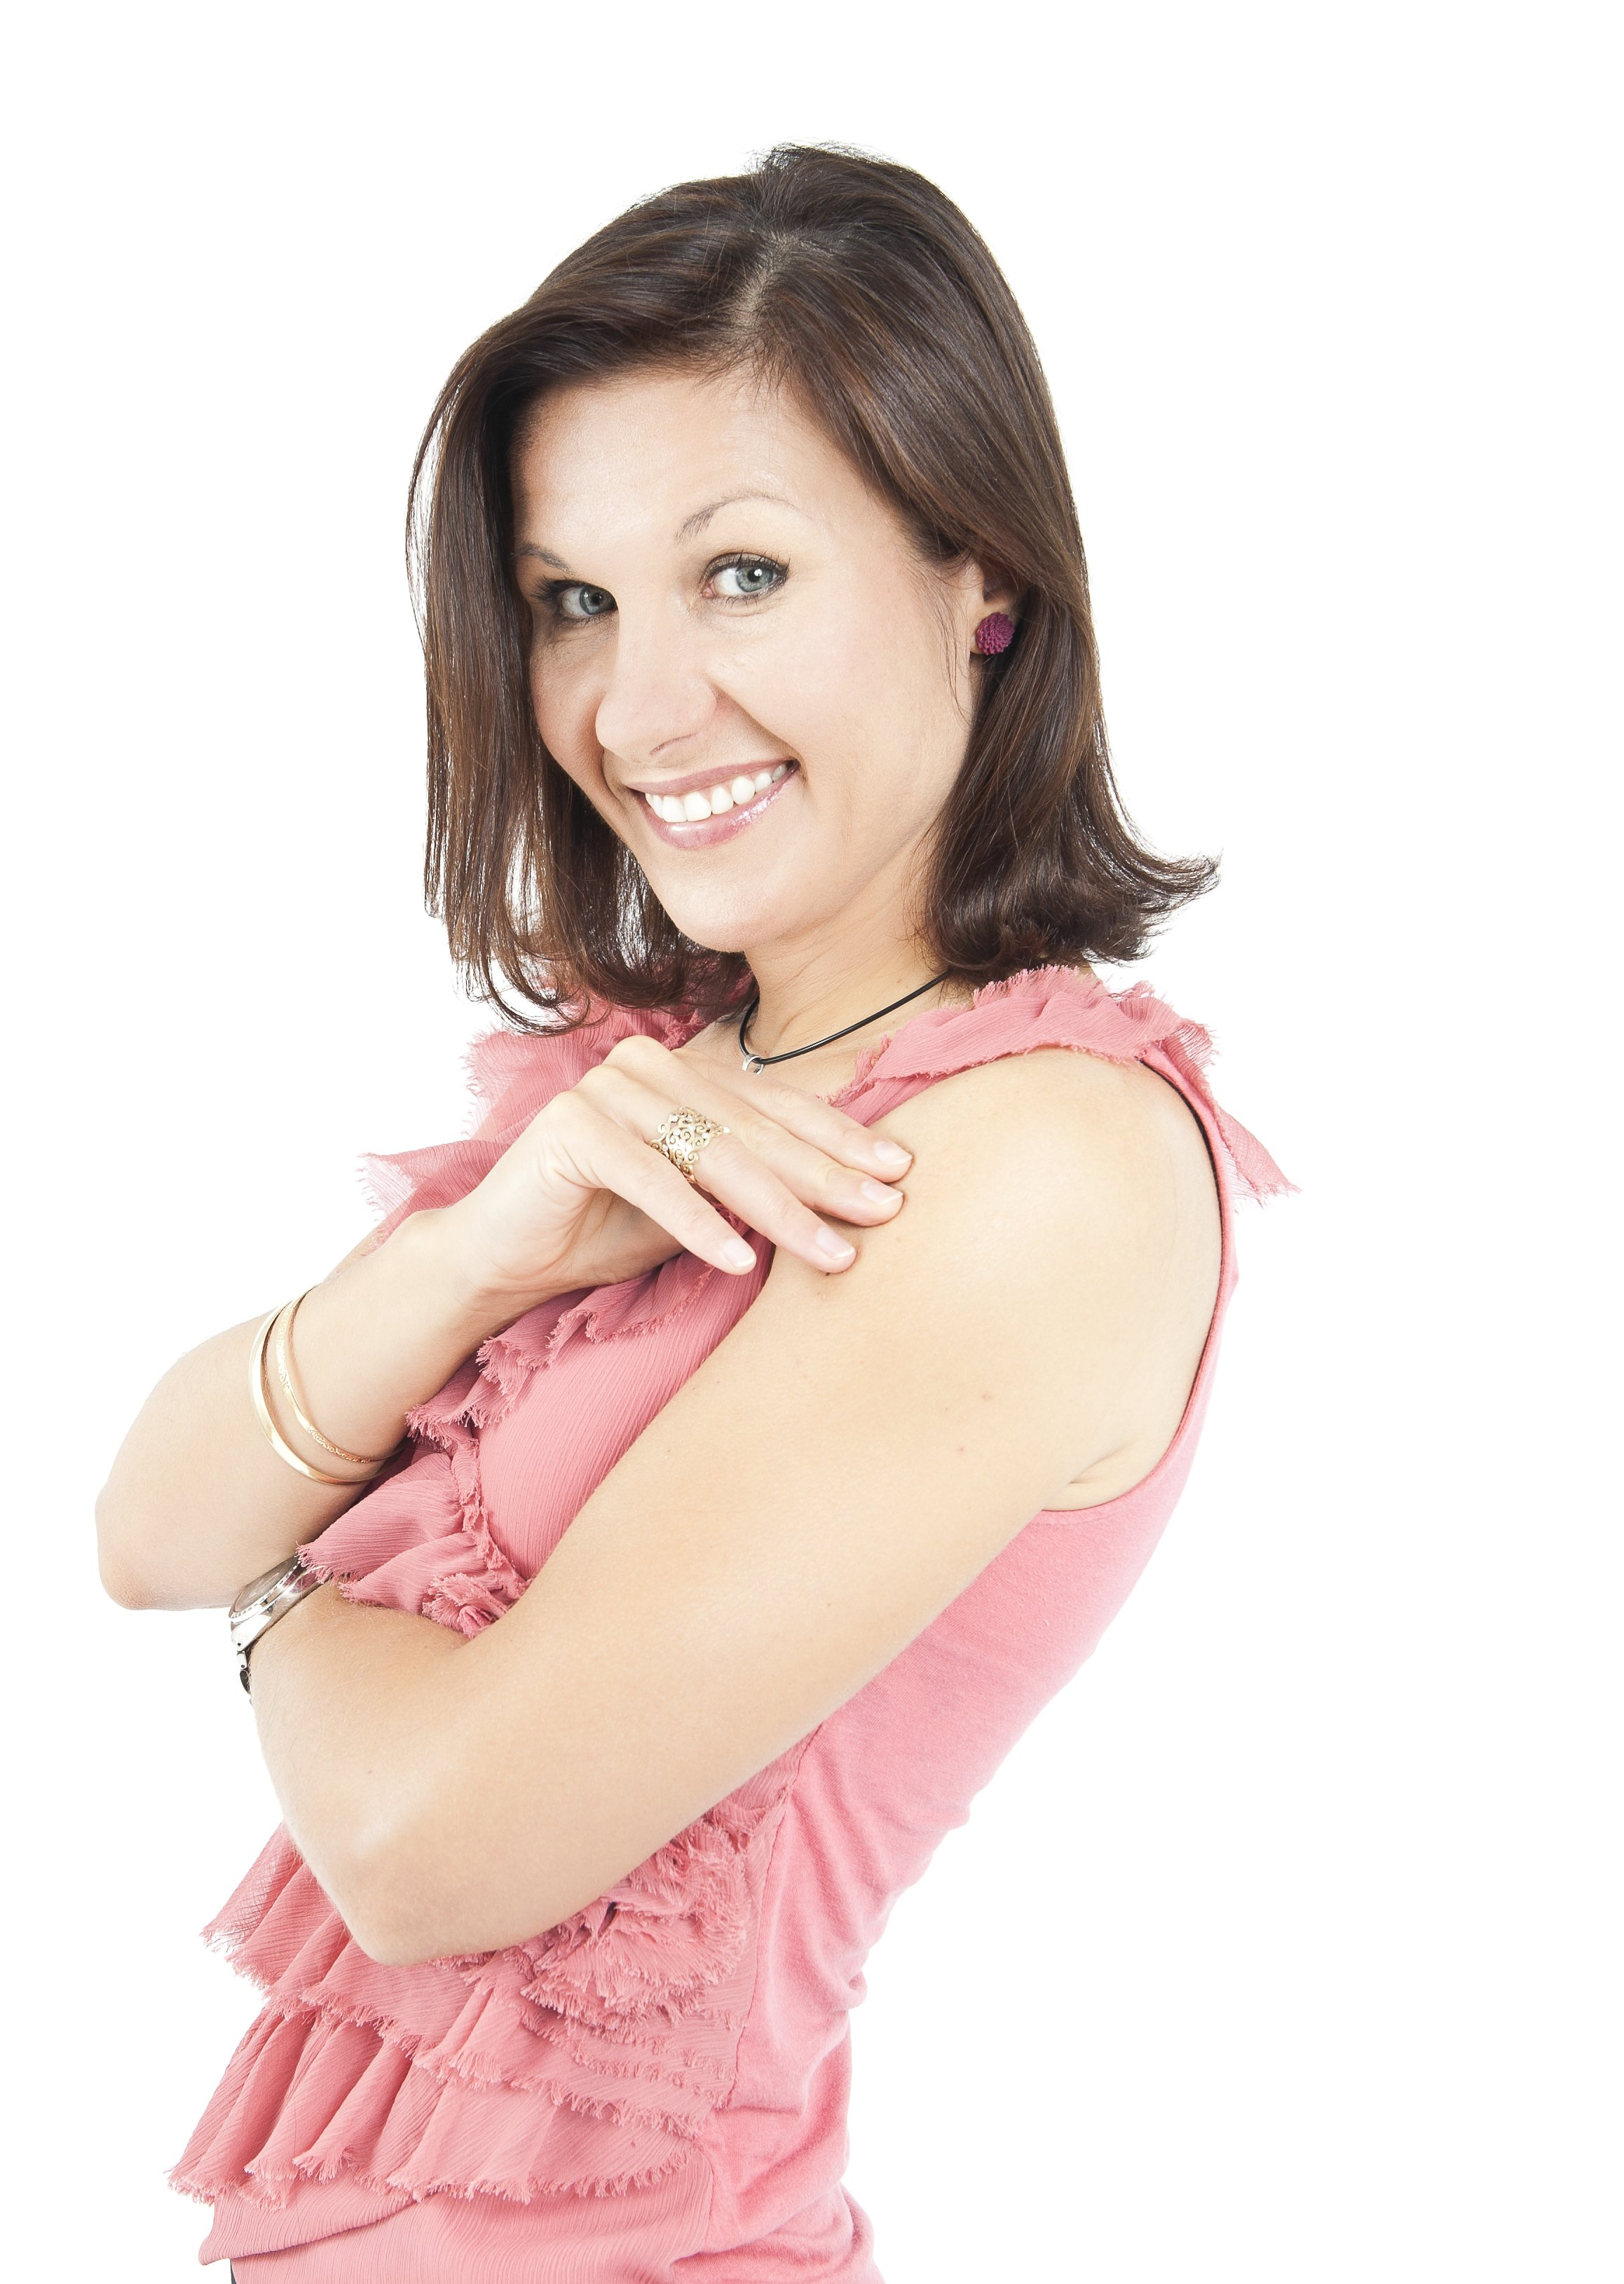 Magdalena Wszeklaki, certified nutrition coach and thyroid wellness expert, gives her clients tools to restore the health of their thyroids.